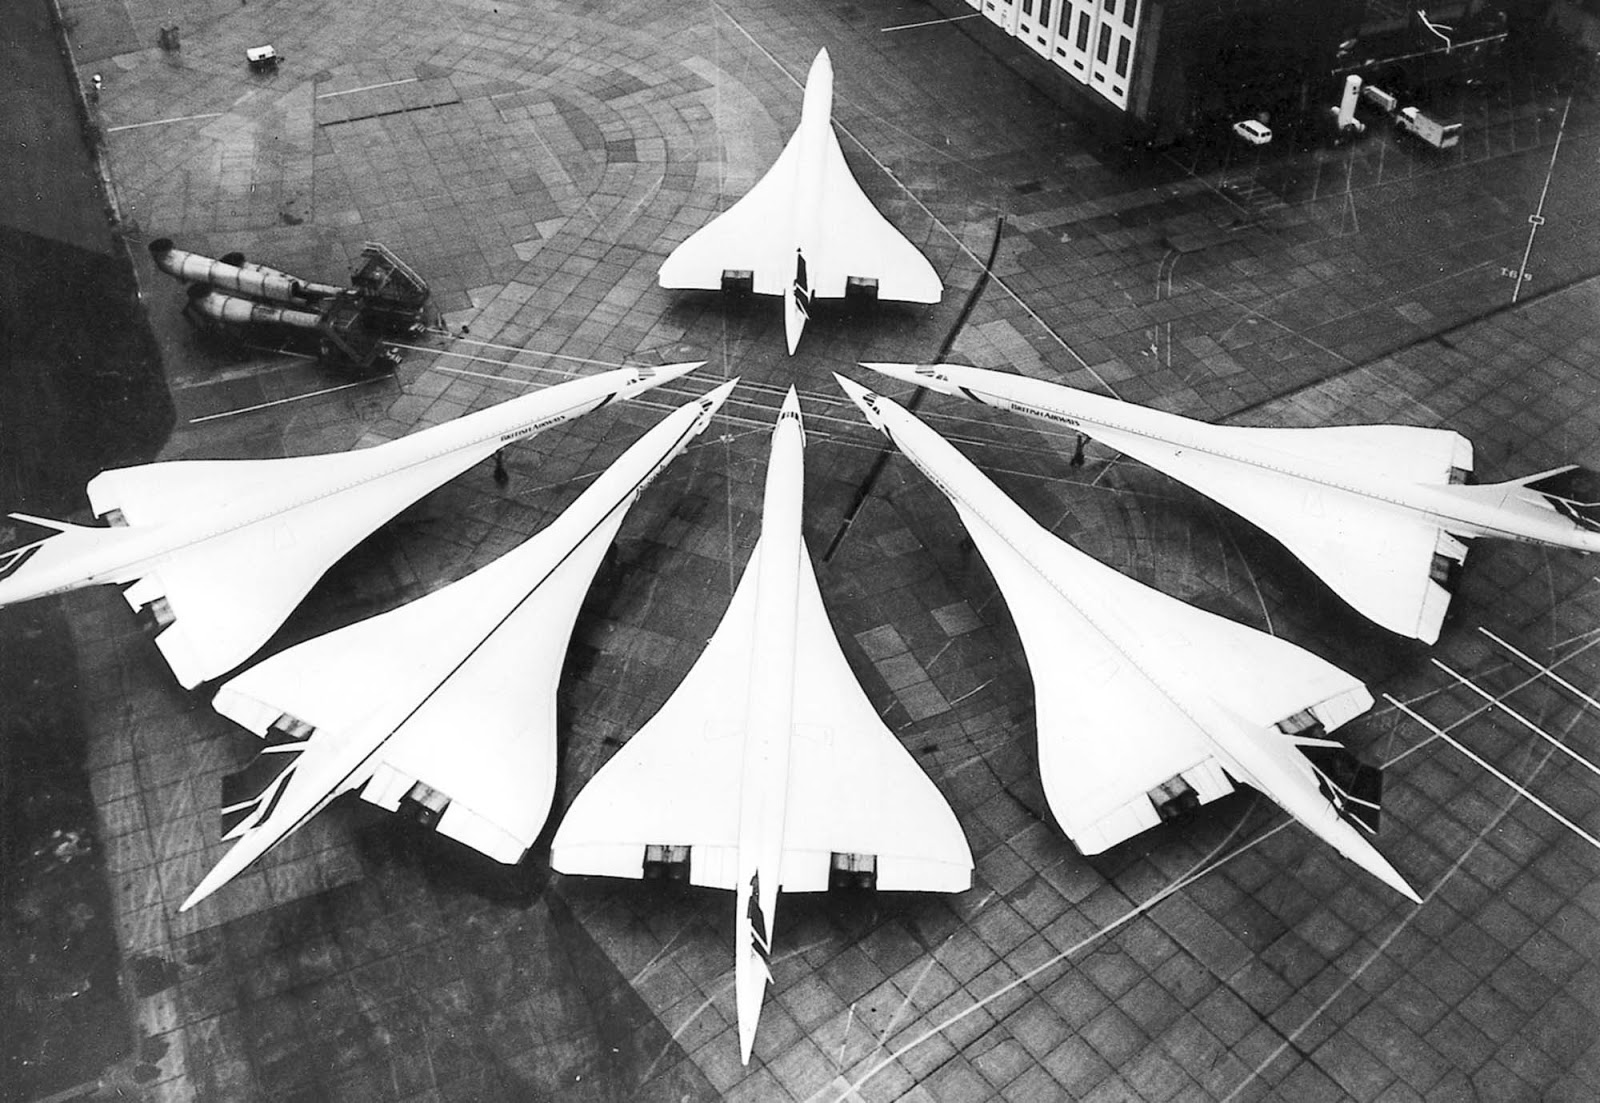 The British Concorde fleet at London Heathrow Airport, January 21, 1986.